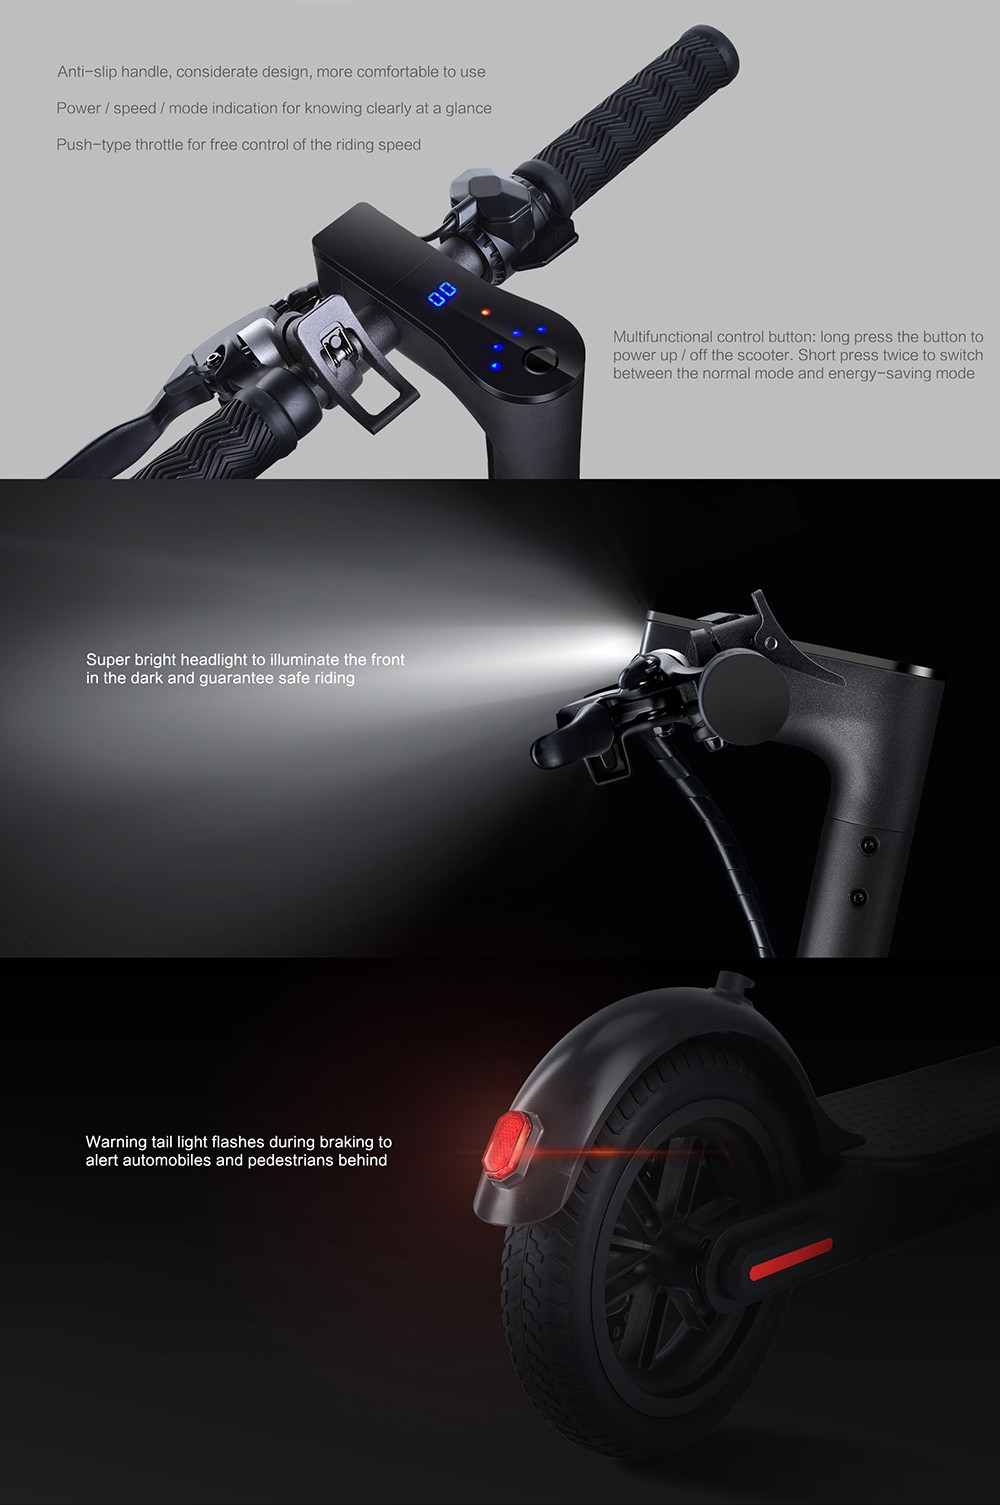 Alfawise M1 Folding Electric Scooter 30km Cruising Distance Puncture-resistant Tire Energy Recovery - Black 350W